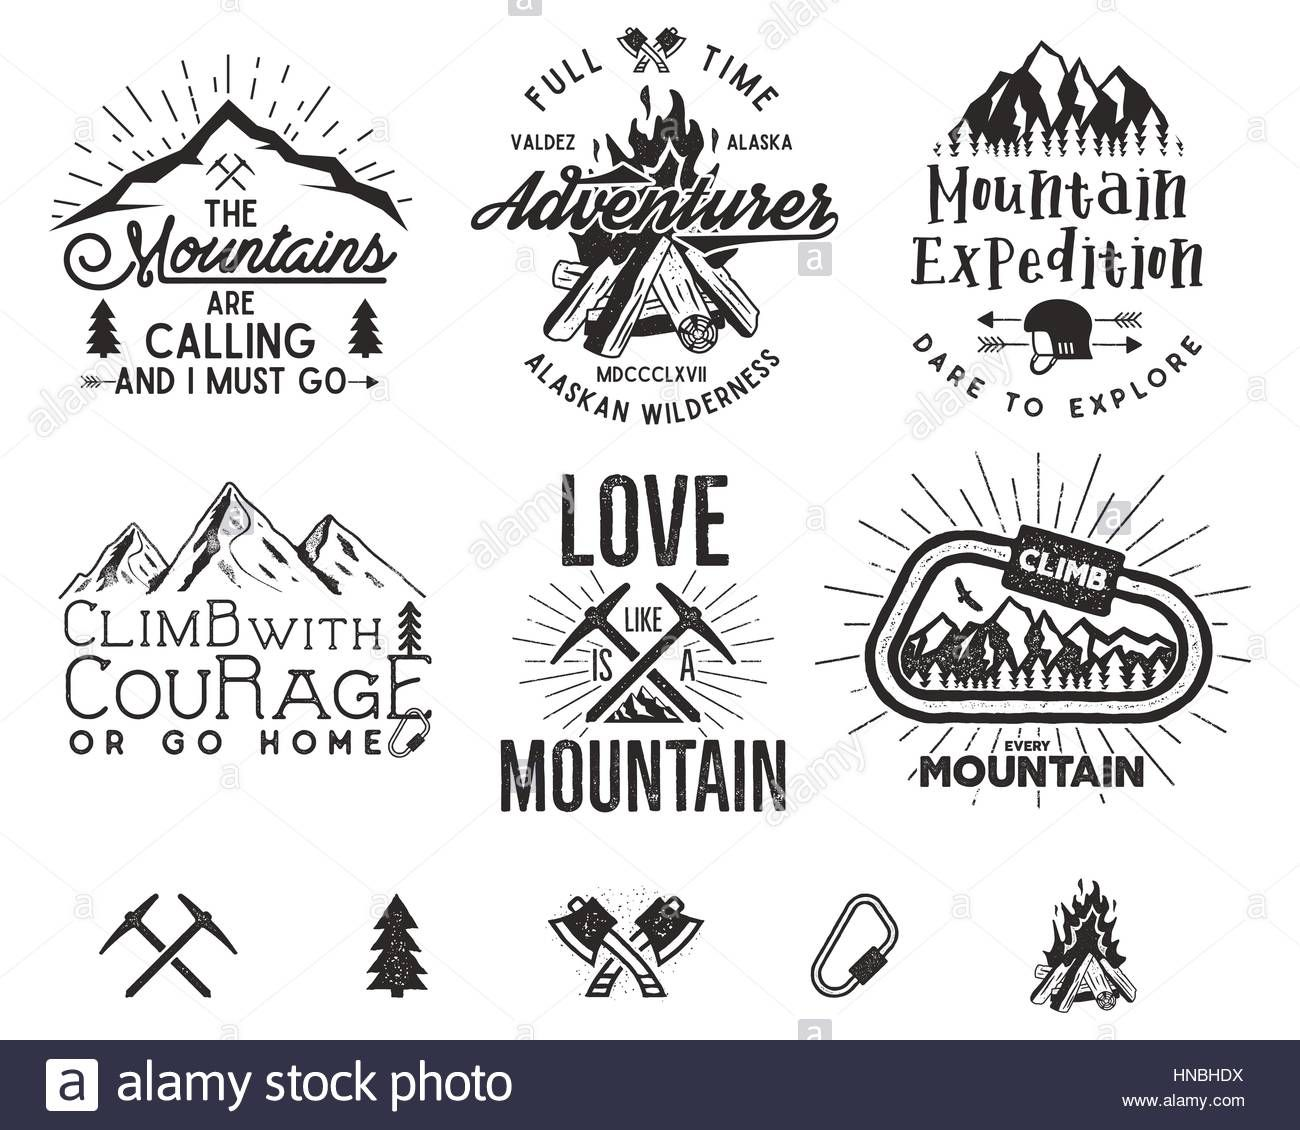 Set of mountain climbing labels, mountains expedition